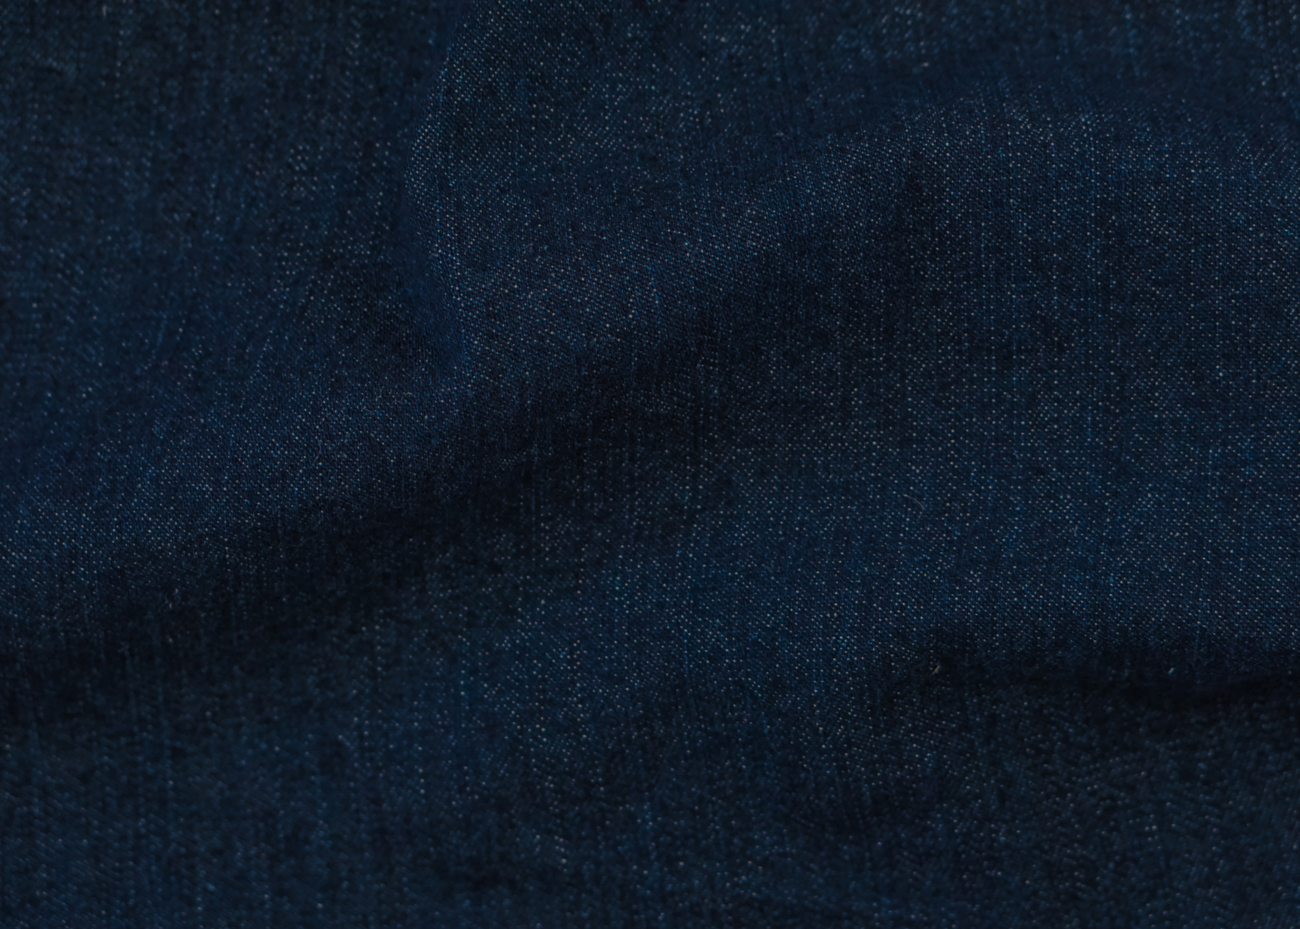 indigo-denim.jpg